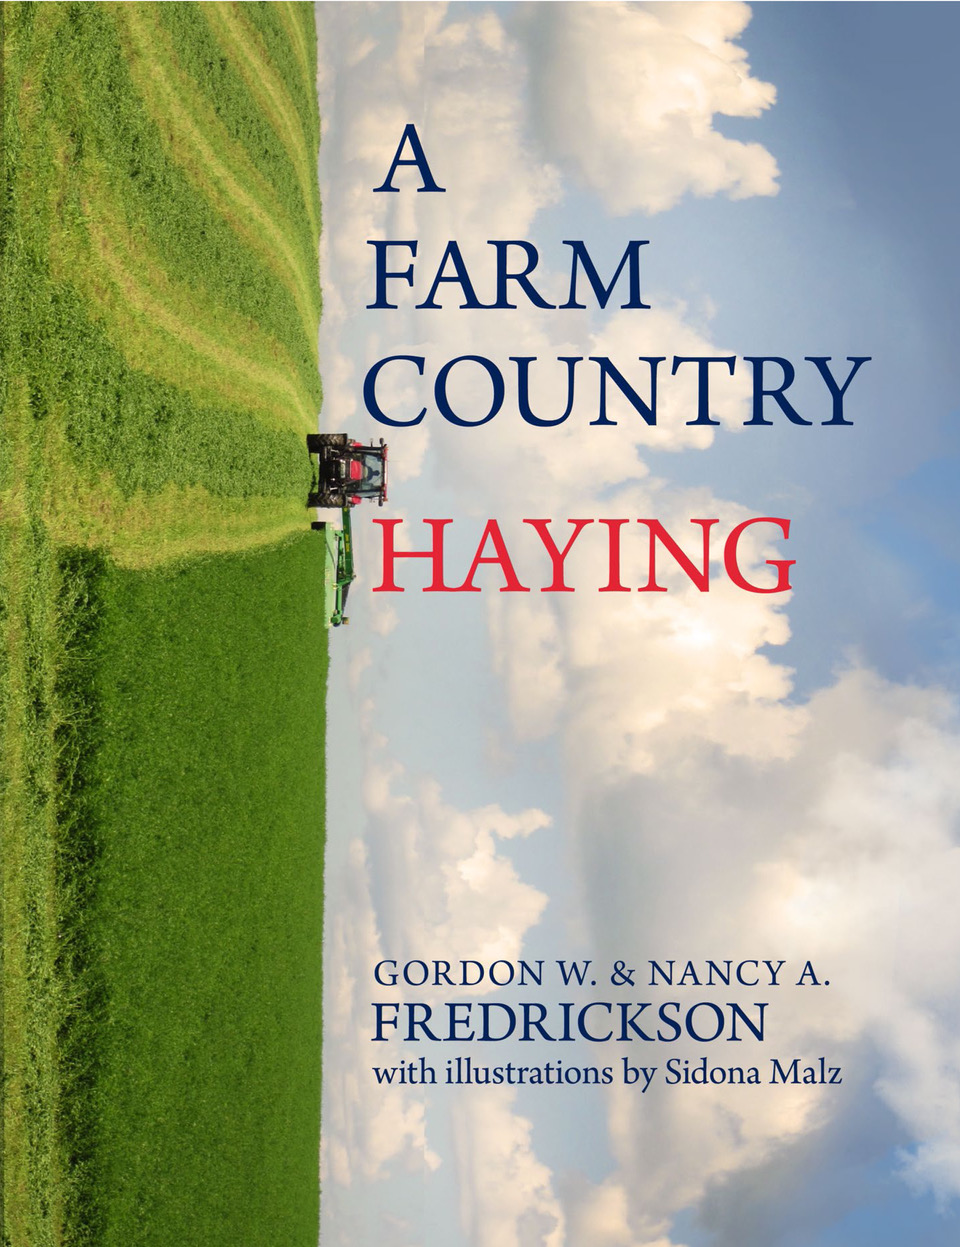 A Farm Country Haying